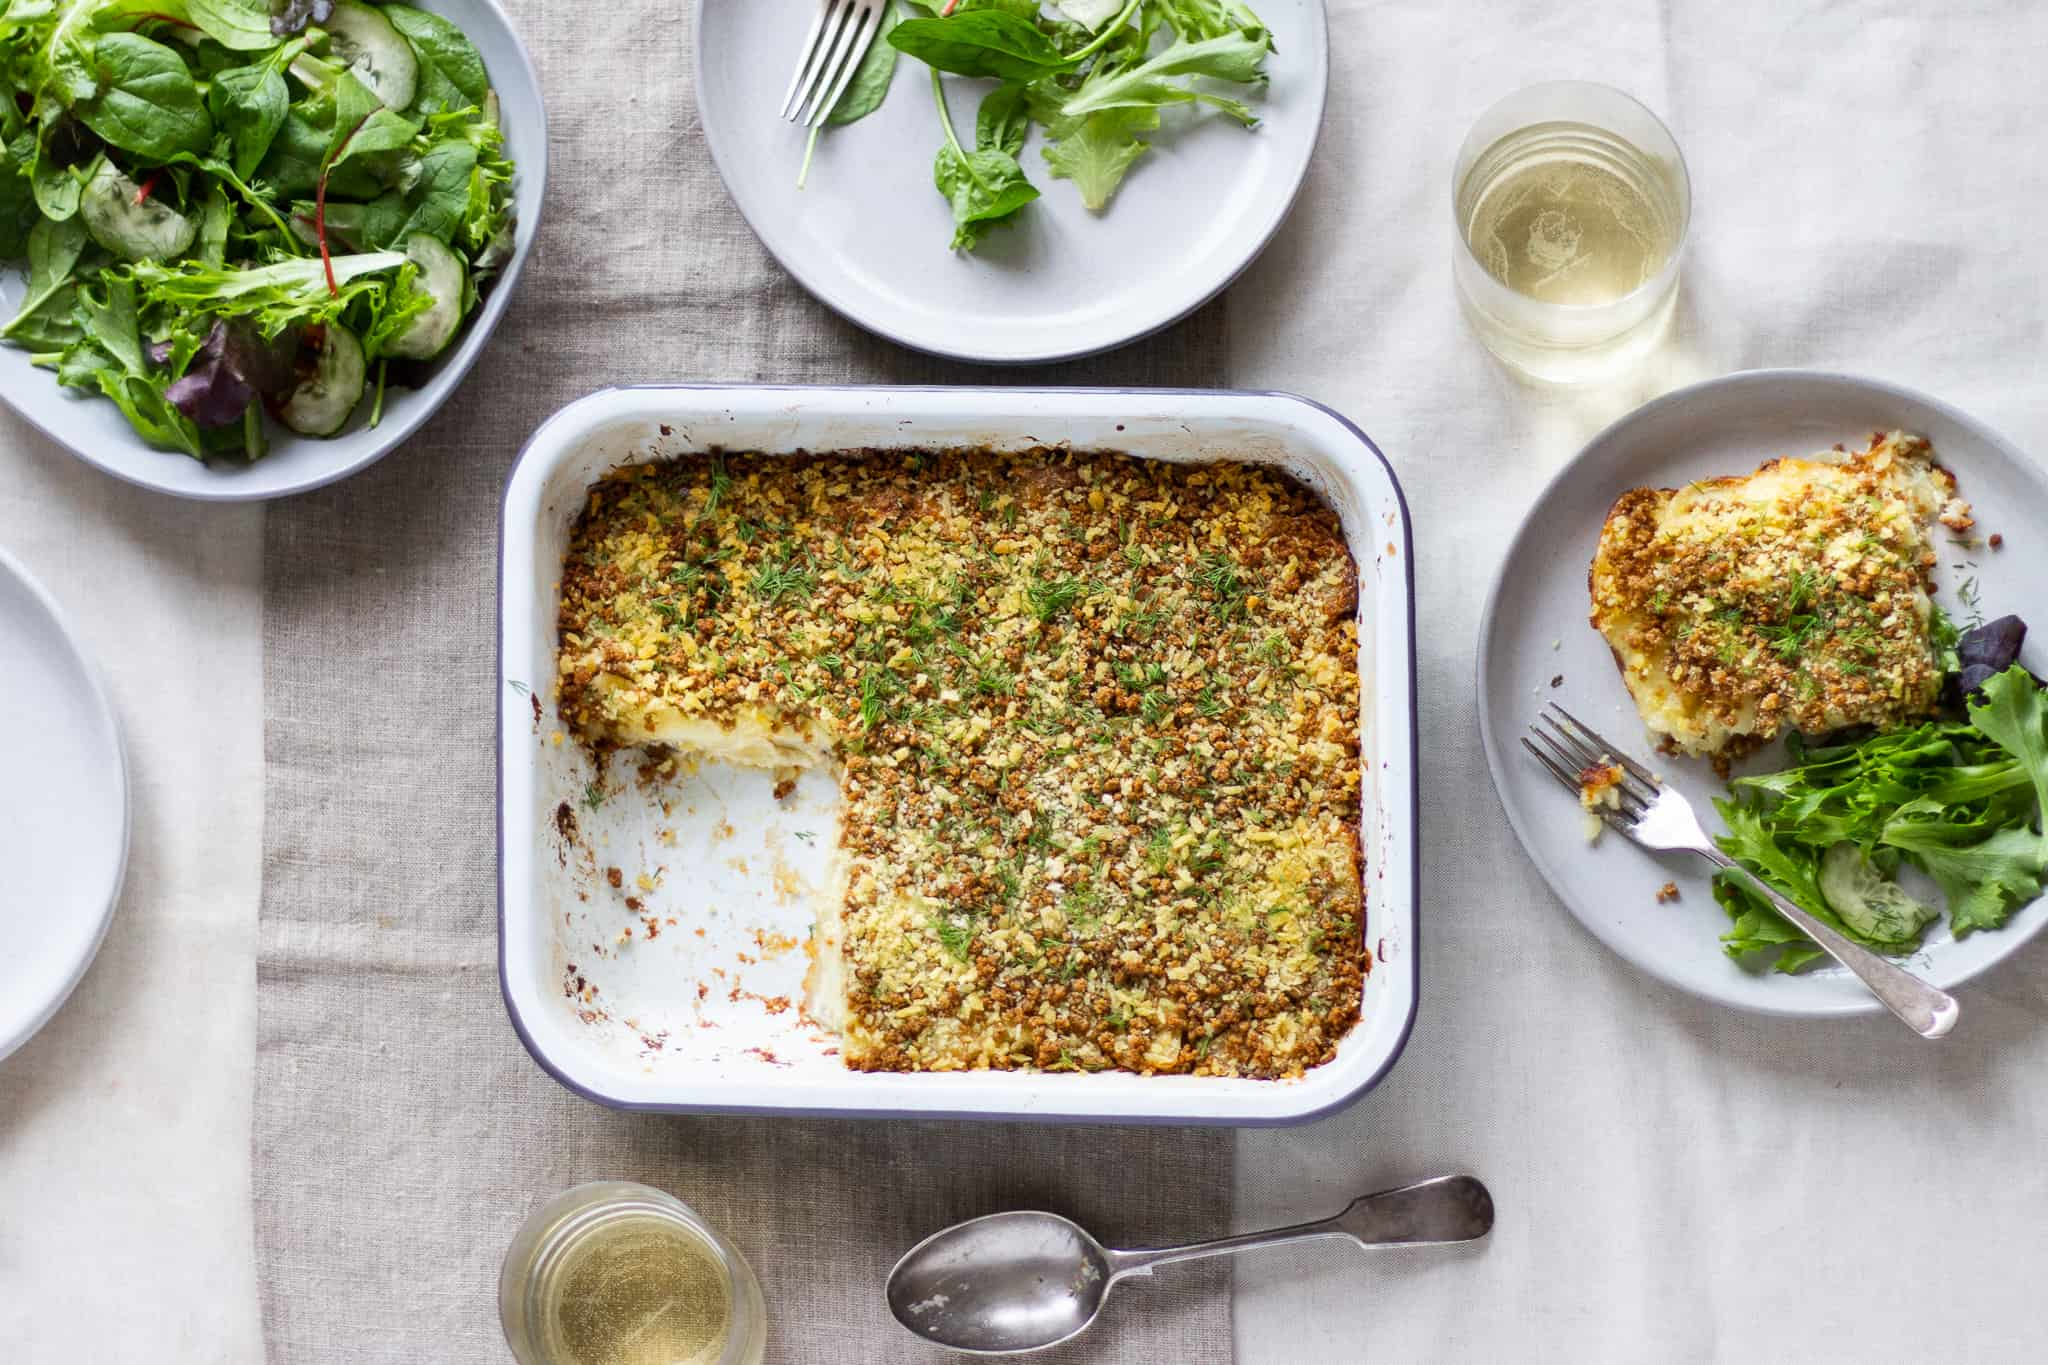 Swedish Jansson's Temptation Gratin